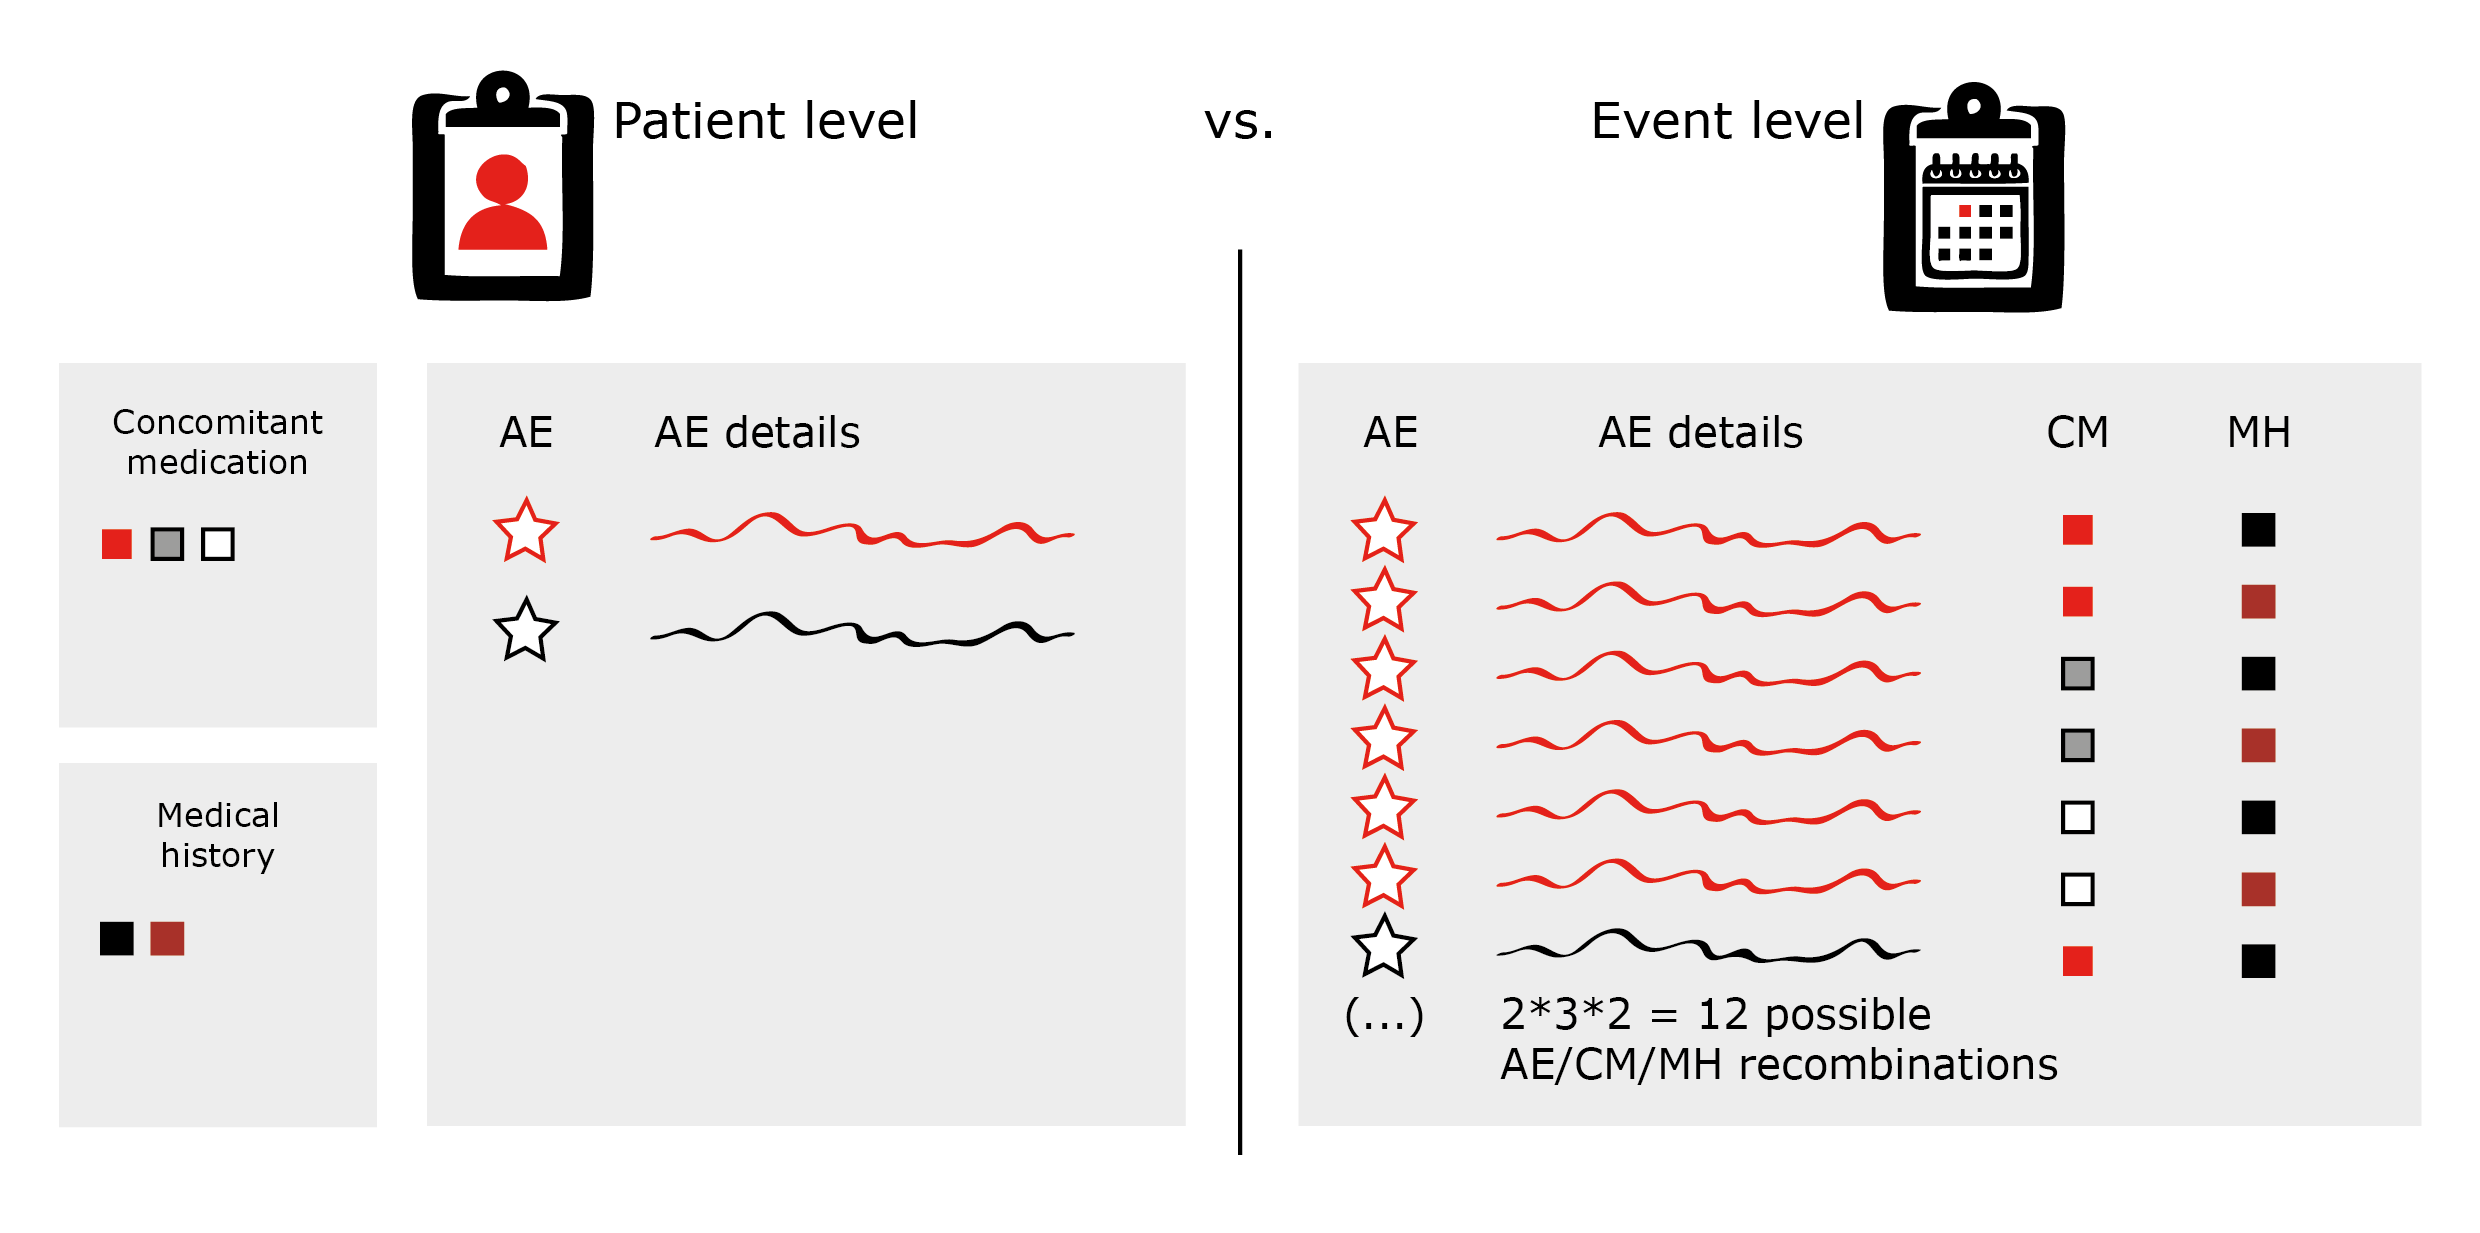 AE listings on patient and event level